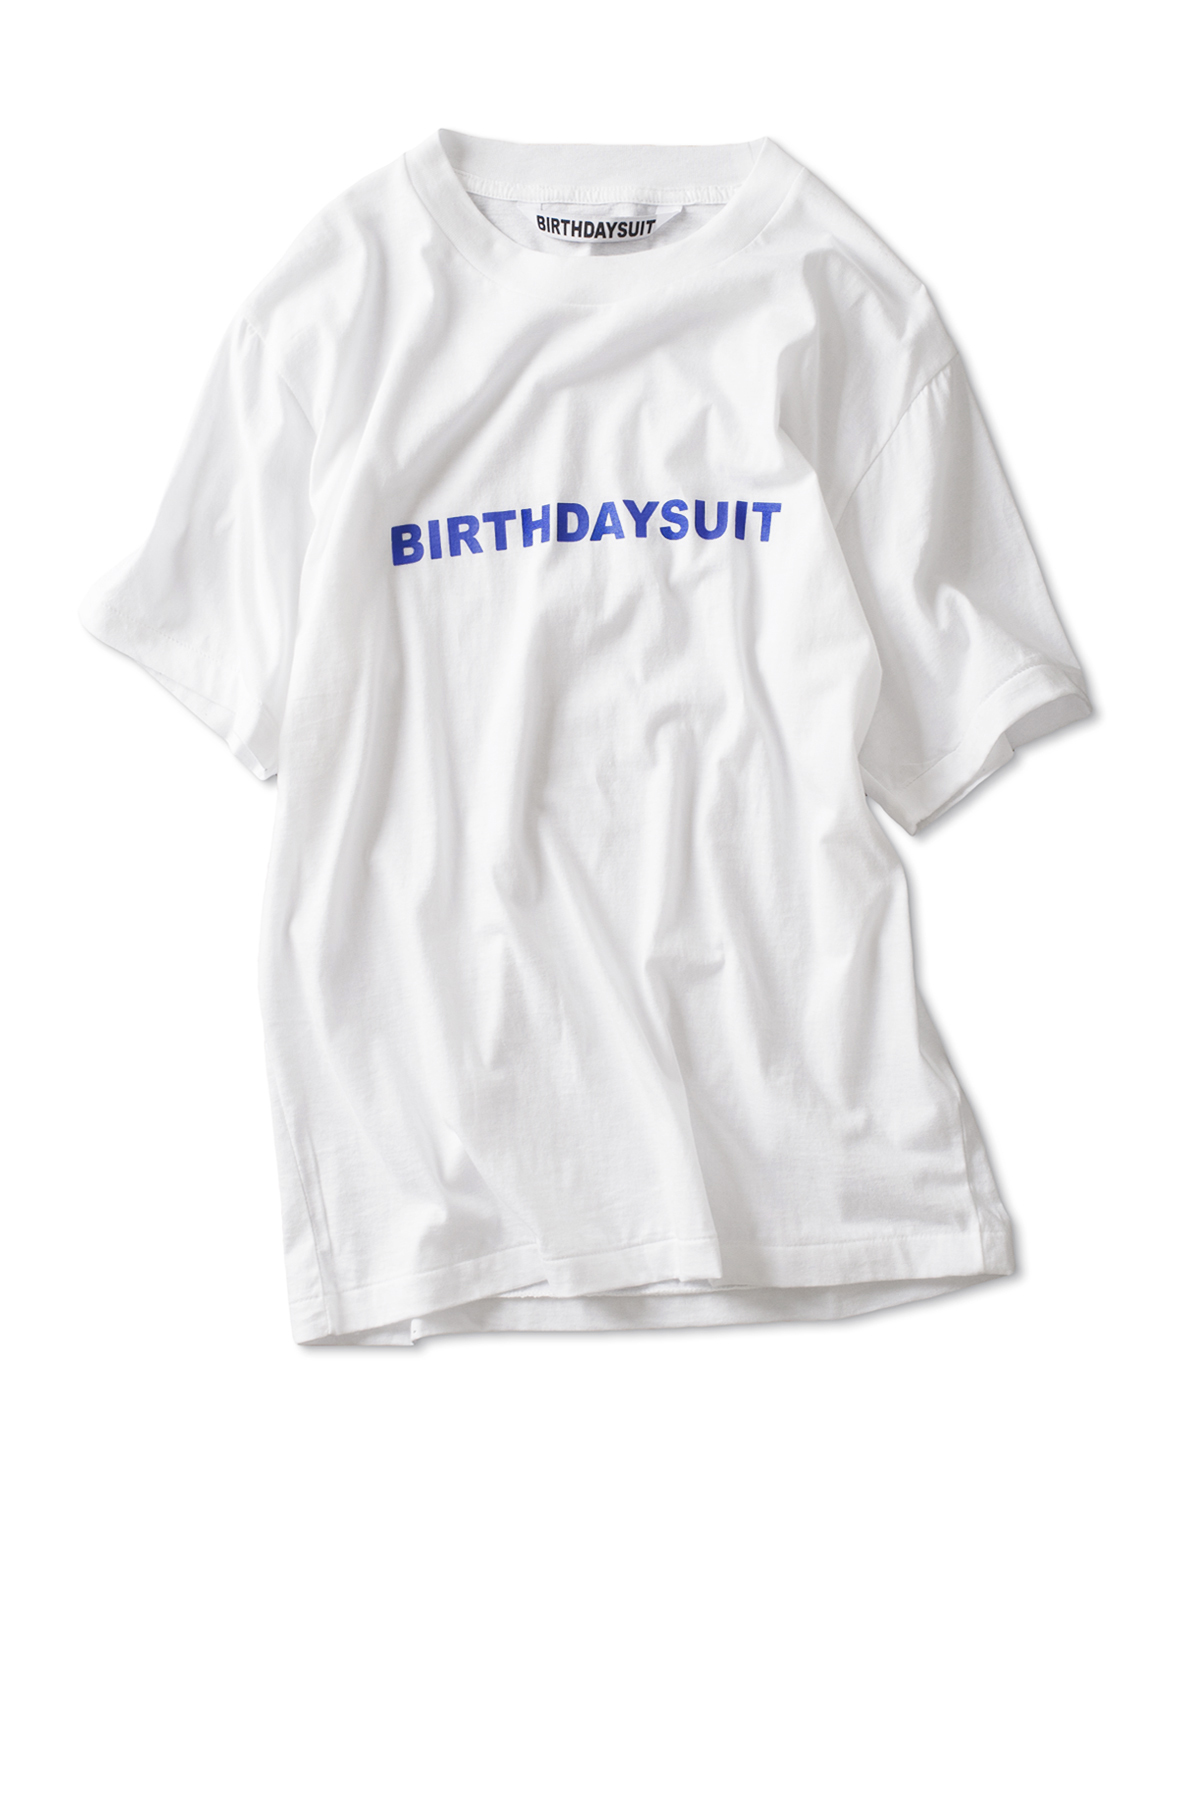 BIRTHDAYSUIT : Vacation T-Shirt (Snow)